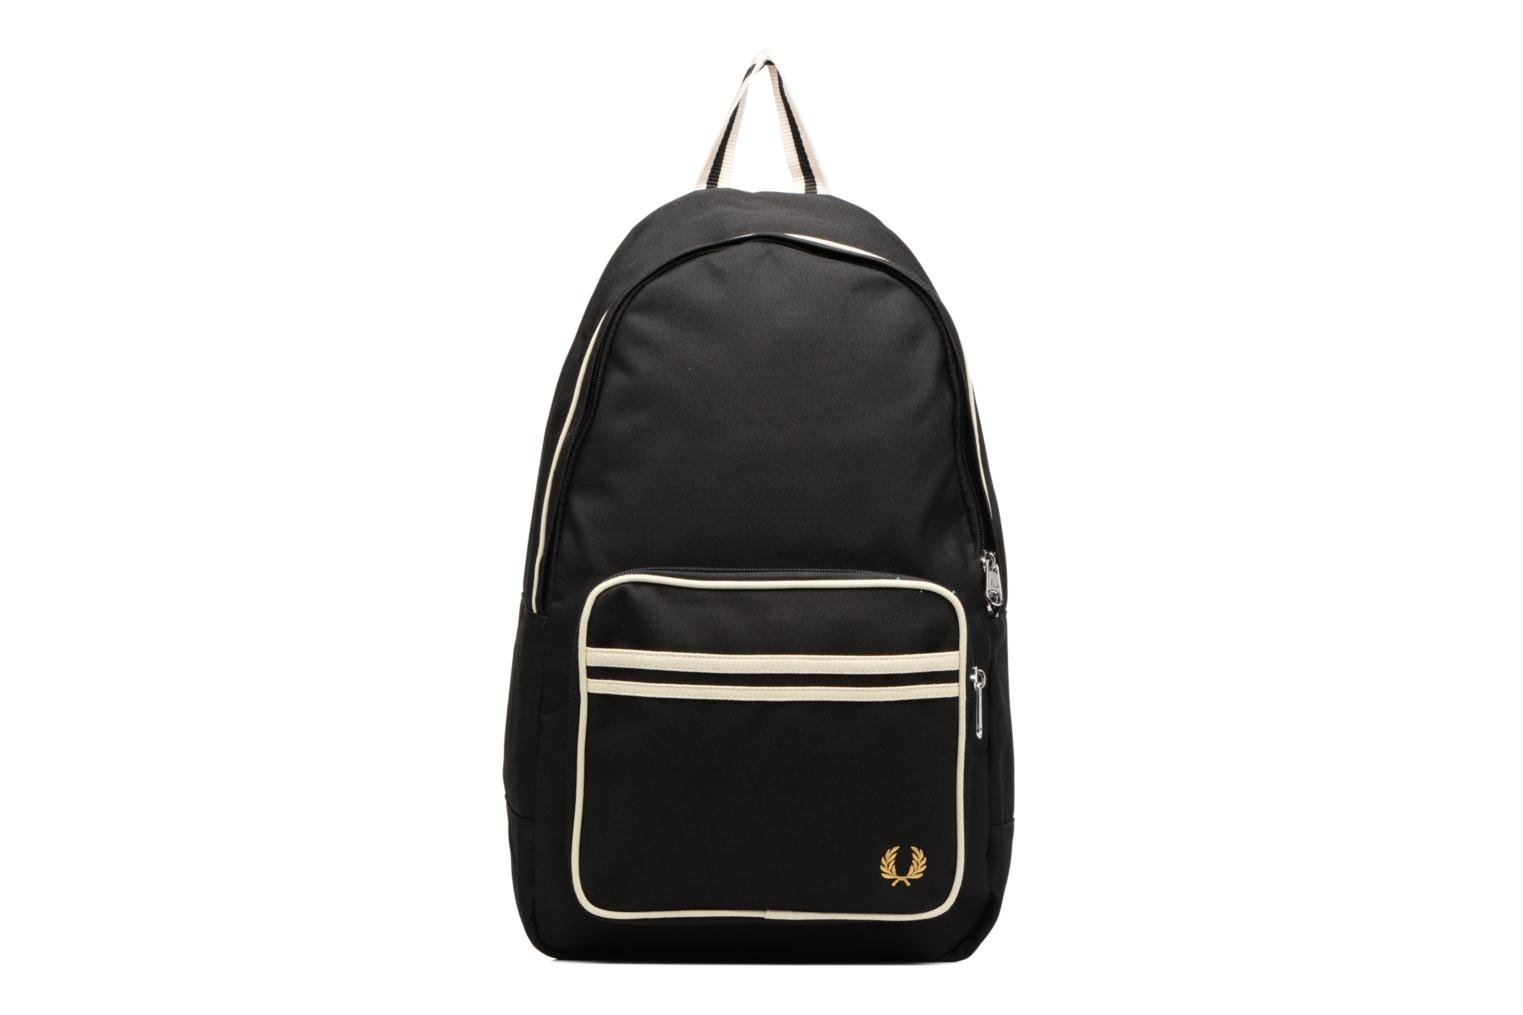 Fred Perry Sac à dos TWIN TIPPED BACK PACK Fred Perry solde zSacbq